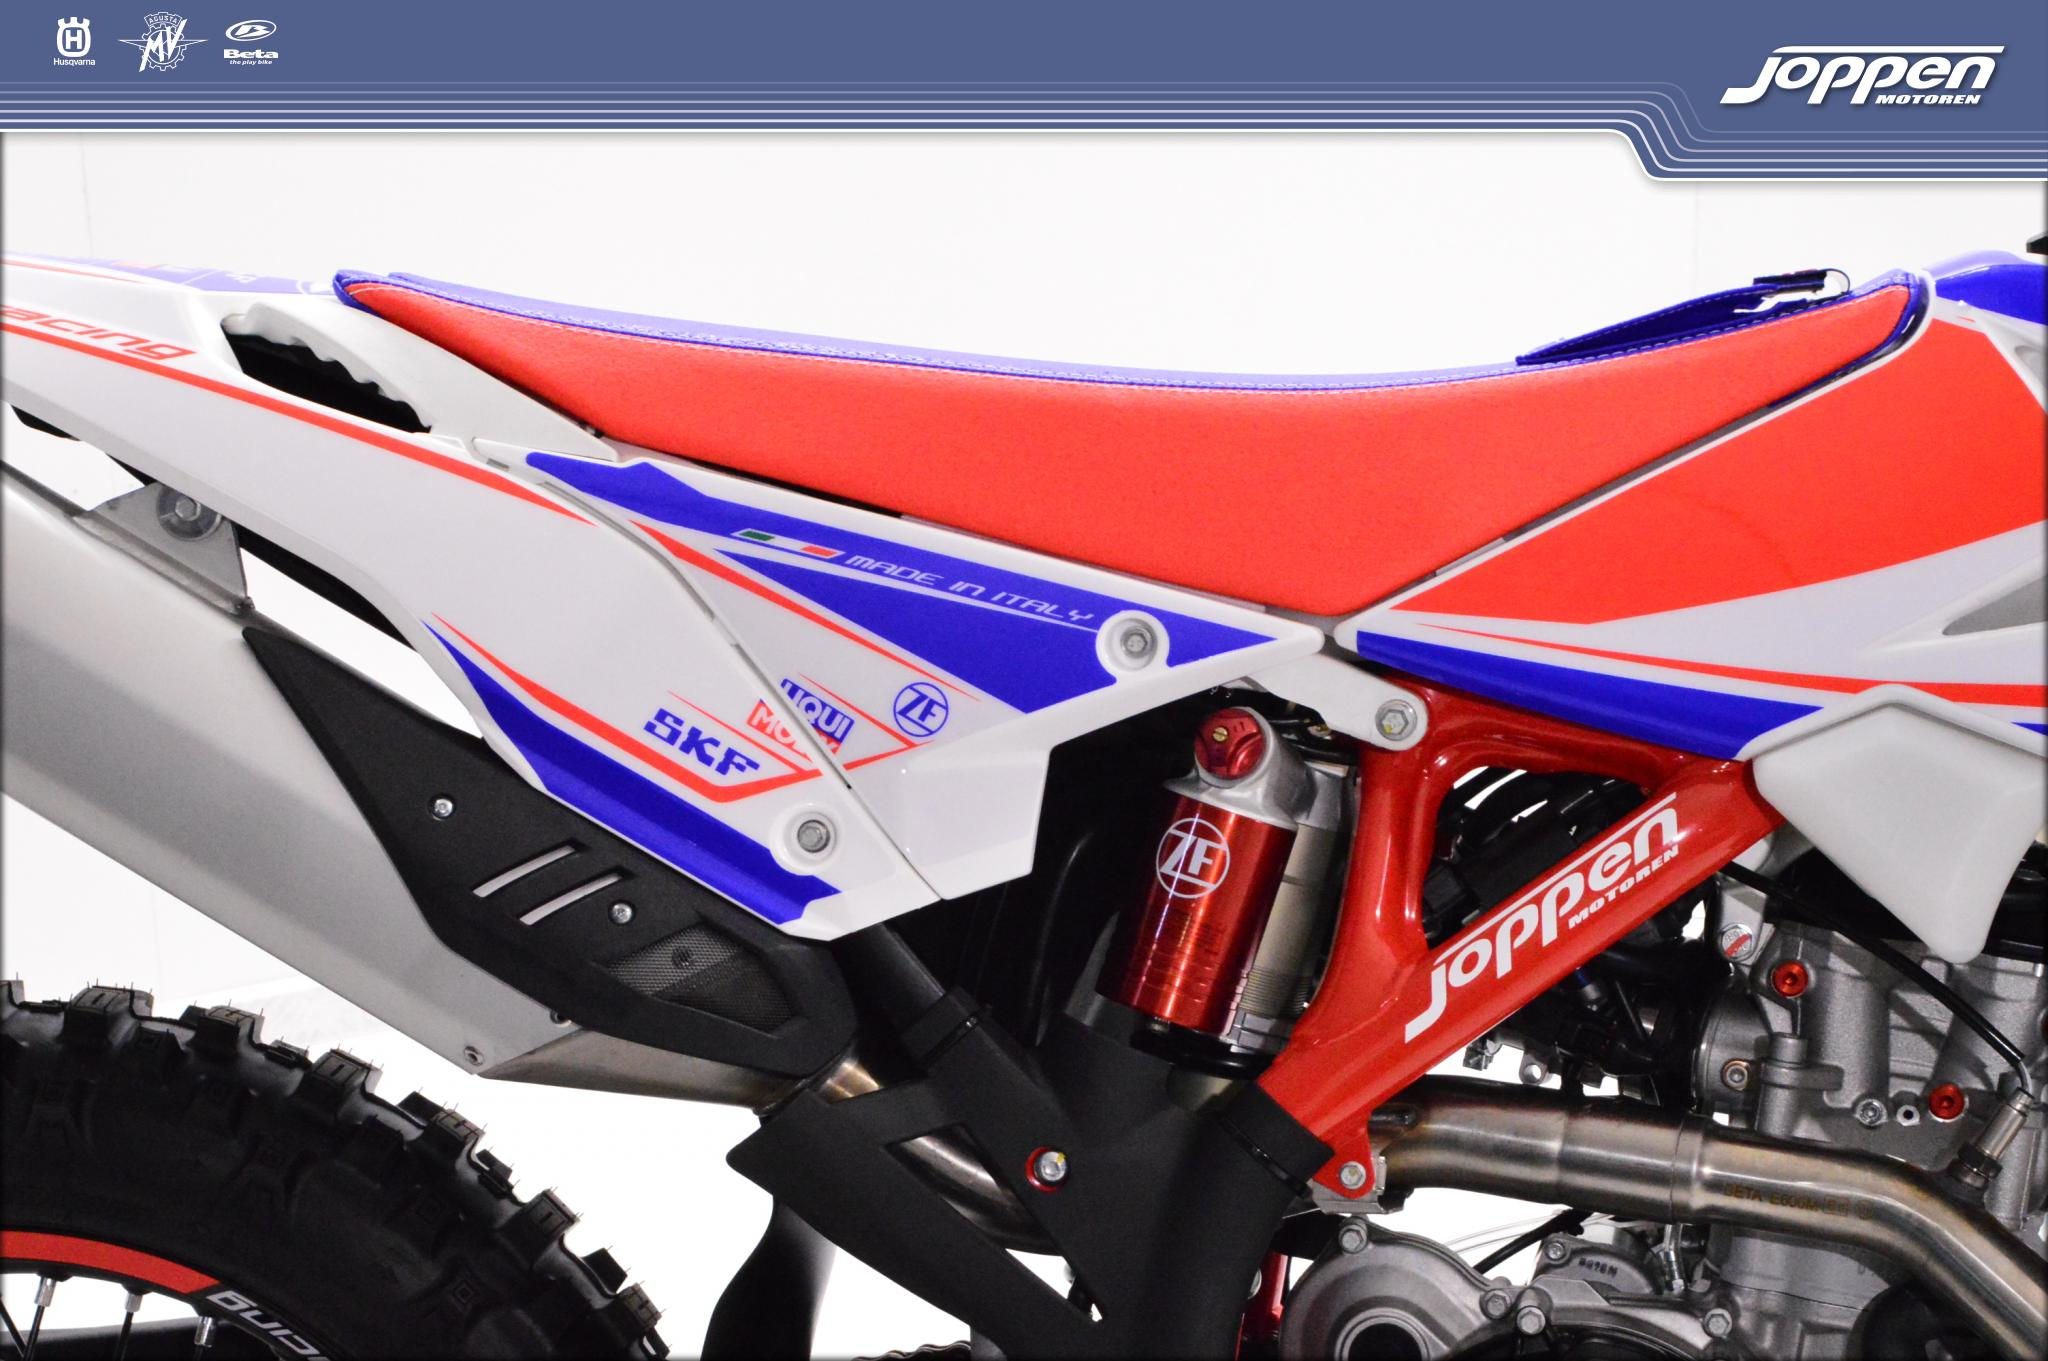 Beta RR350 4T Racing 2019 rood/wit - Off road